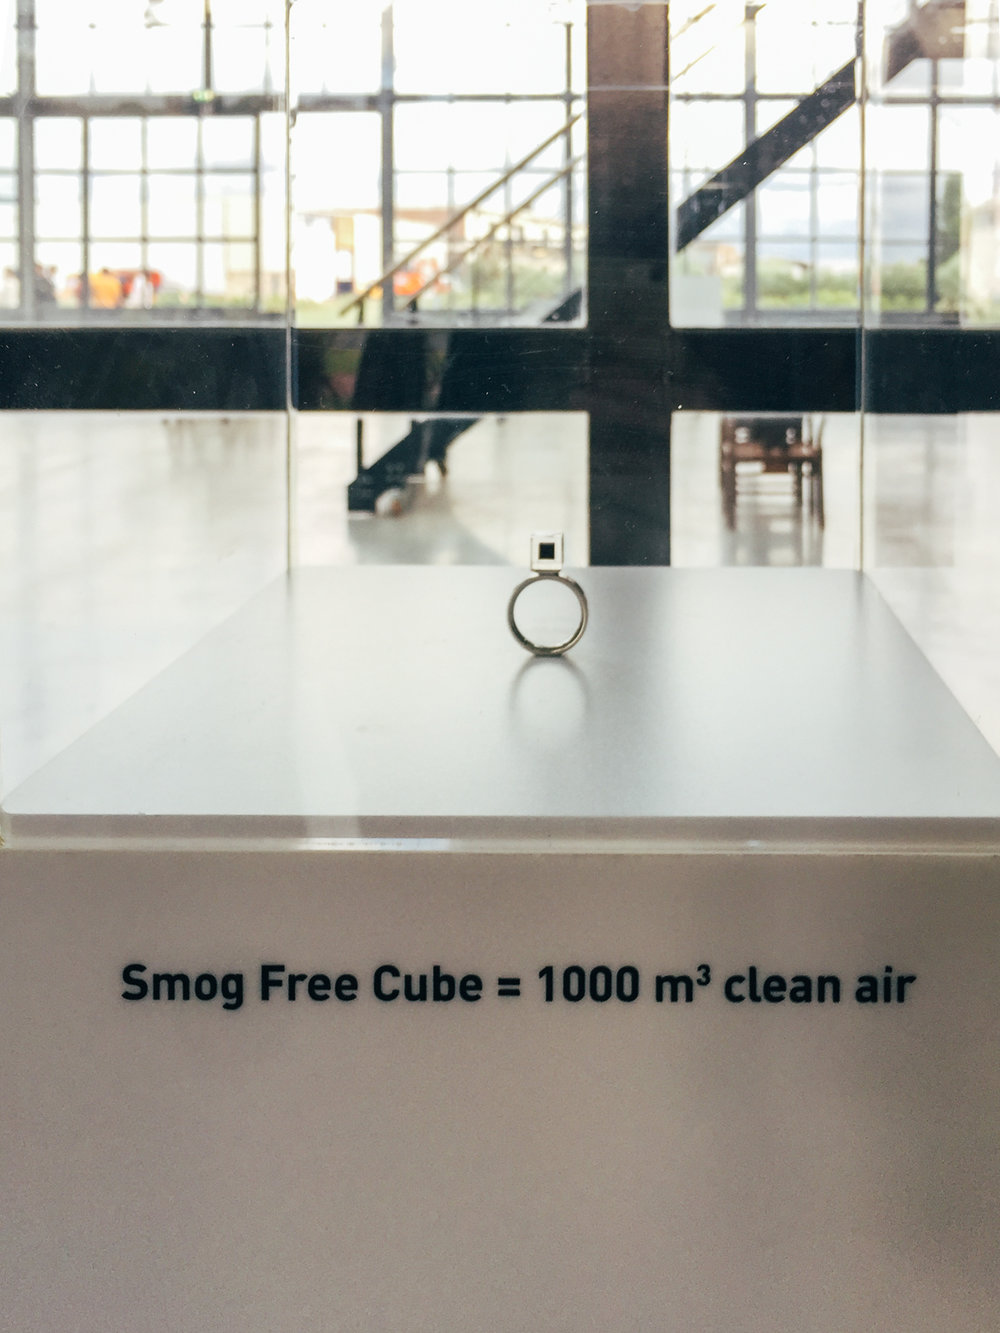 Just one Ring equals 1000 m3 of cleaned air.